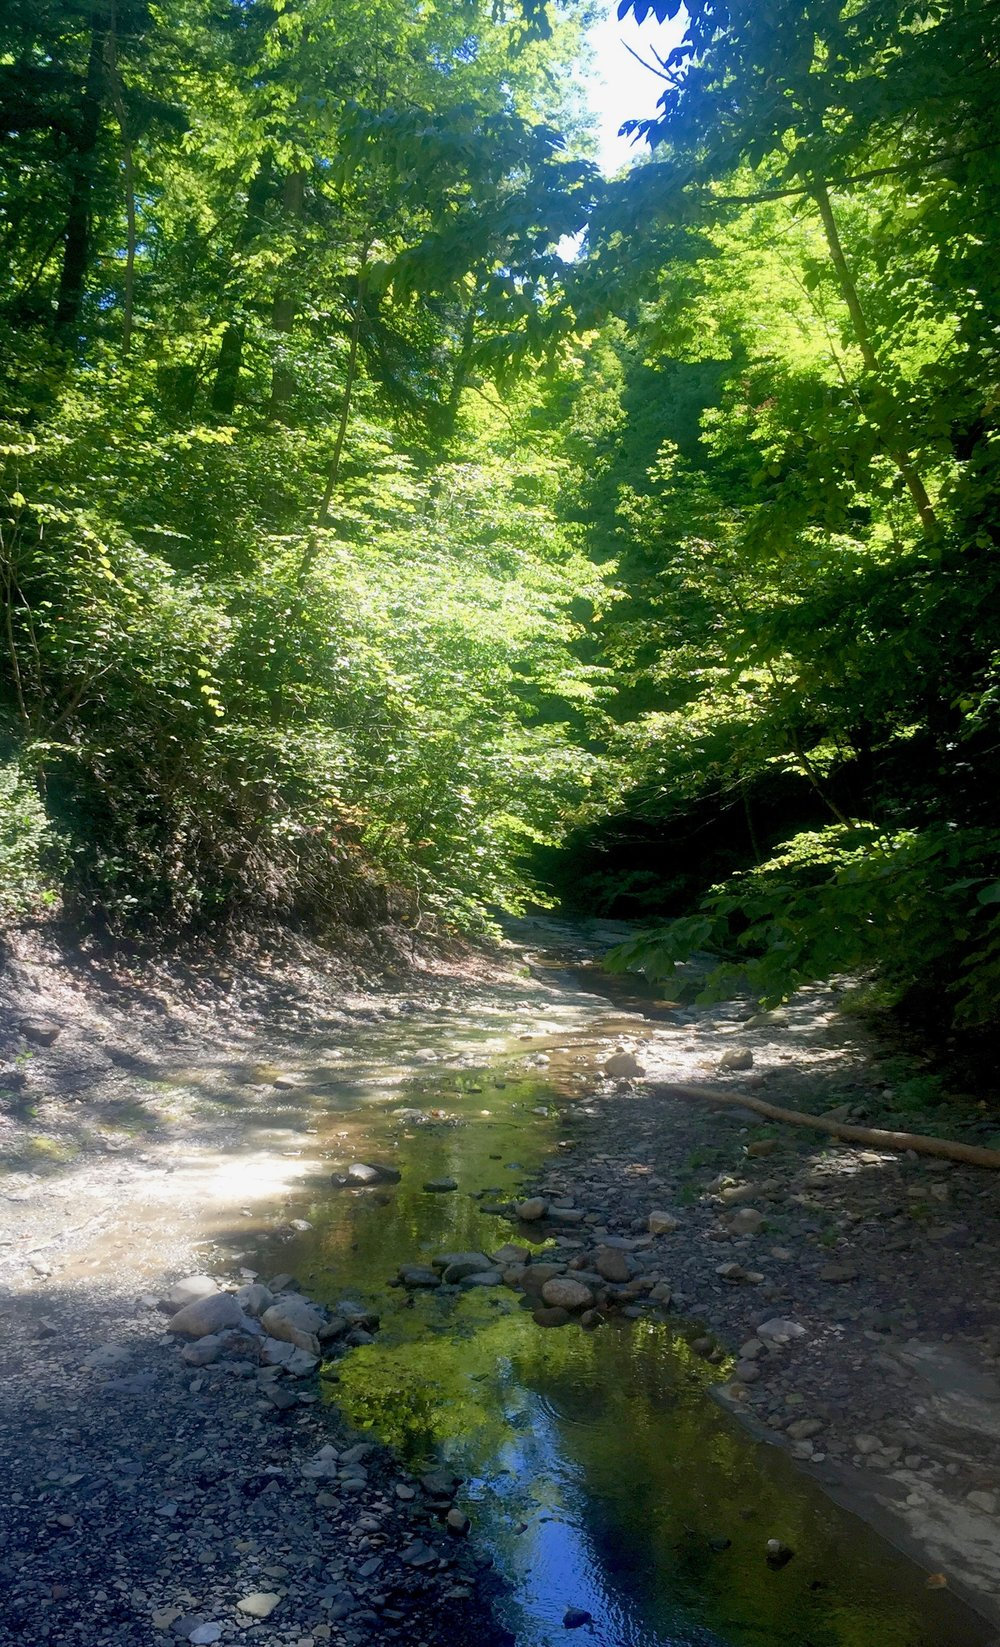 The brook in high summer when the water is at its low point.